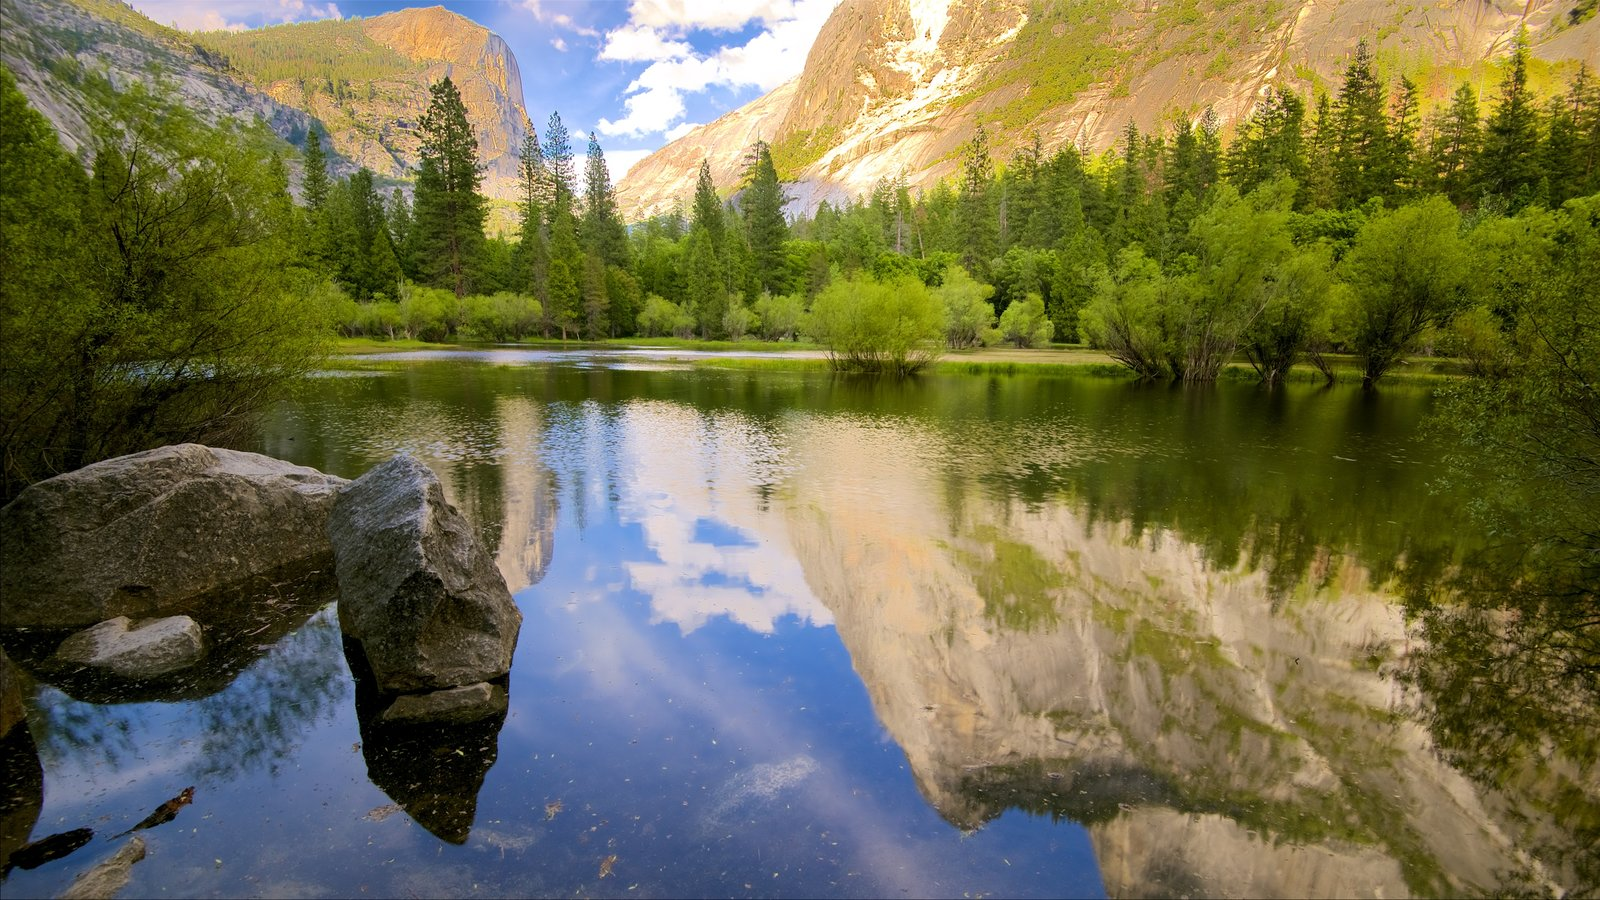 Yosemite National Park featuring a lake or waterhole, mountains and tranquil scenes